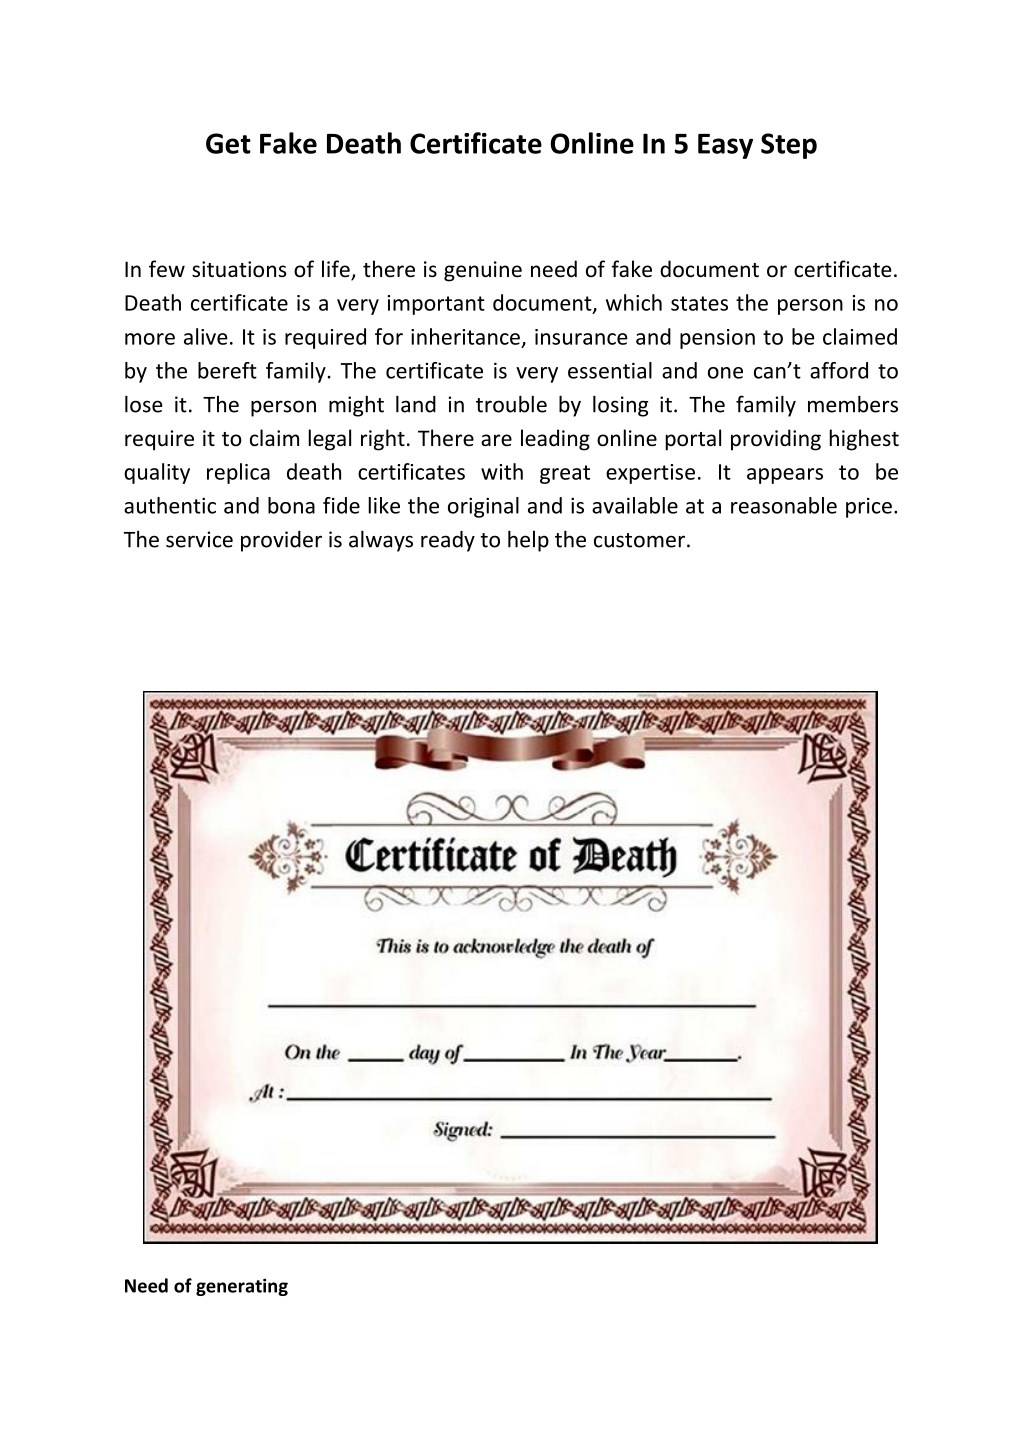 PPT - Get Fake Death Certificate Online In 22 Easy Step PowerPoint For Fake Death Certificate Template